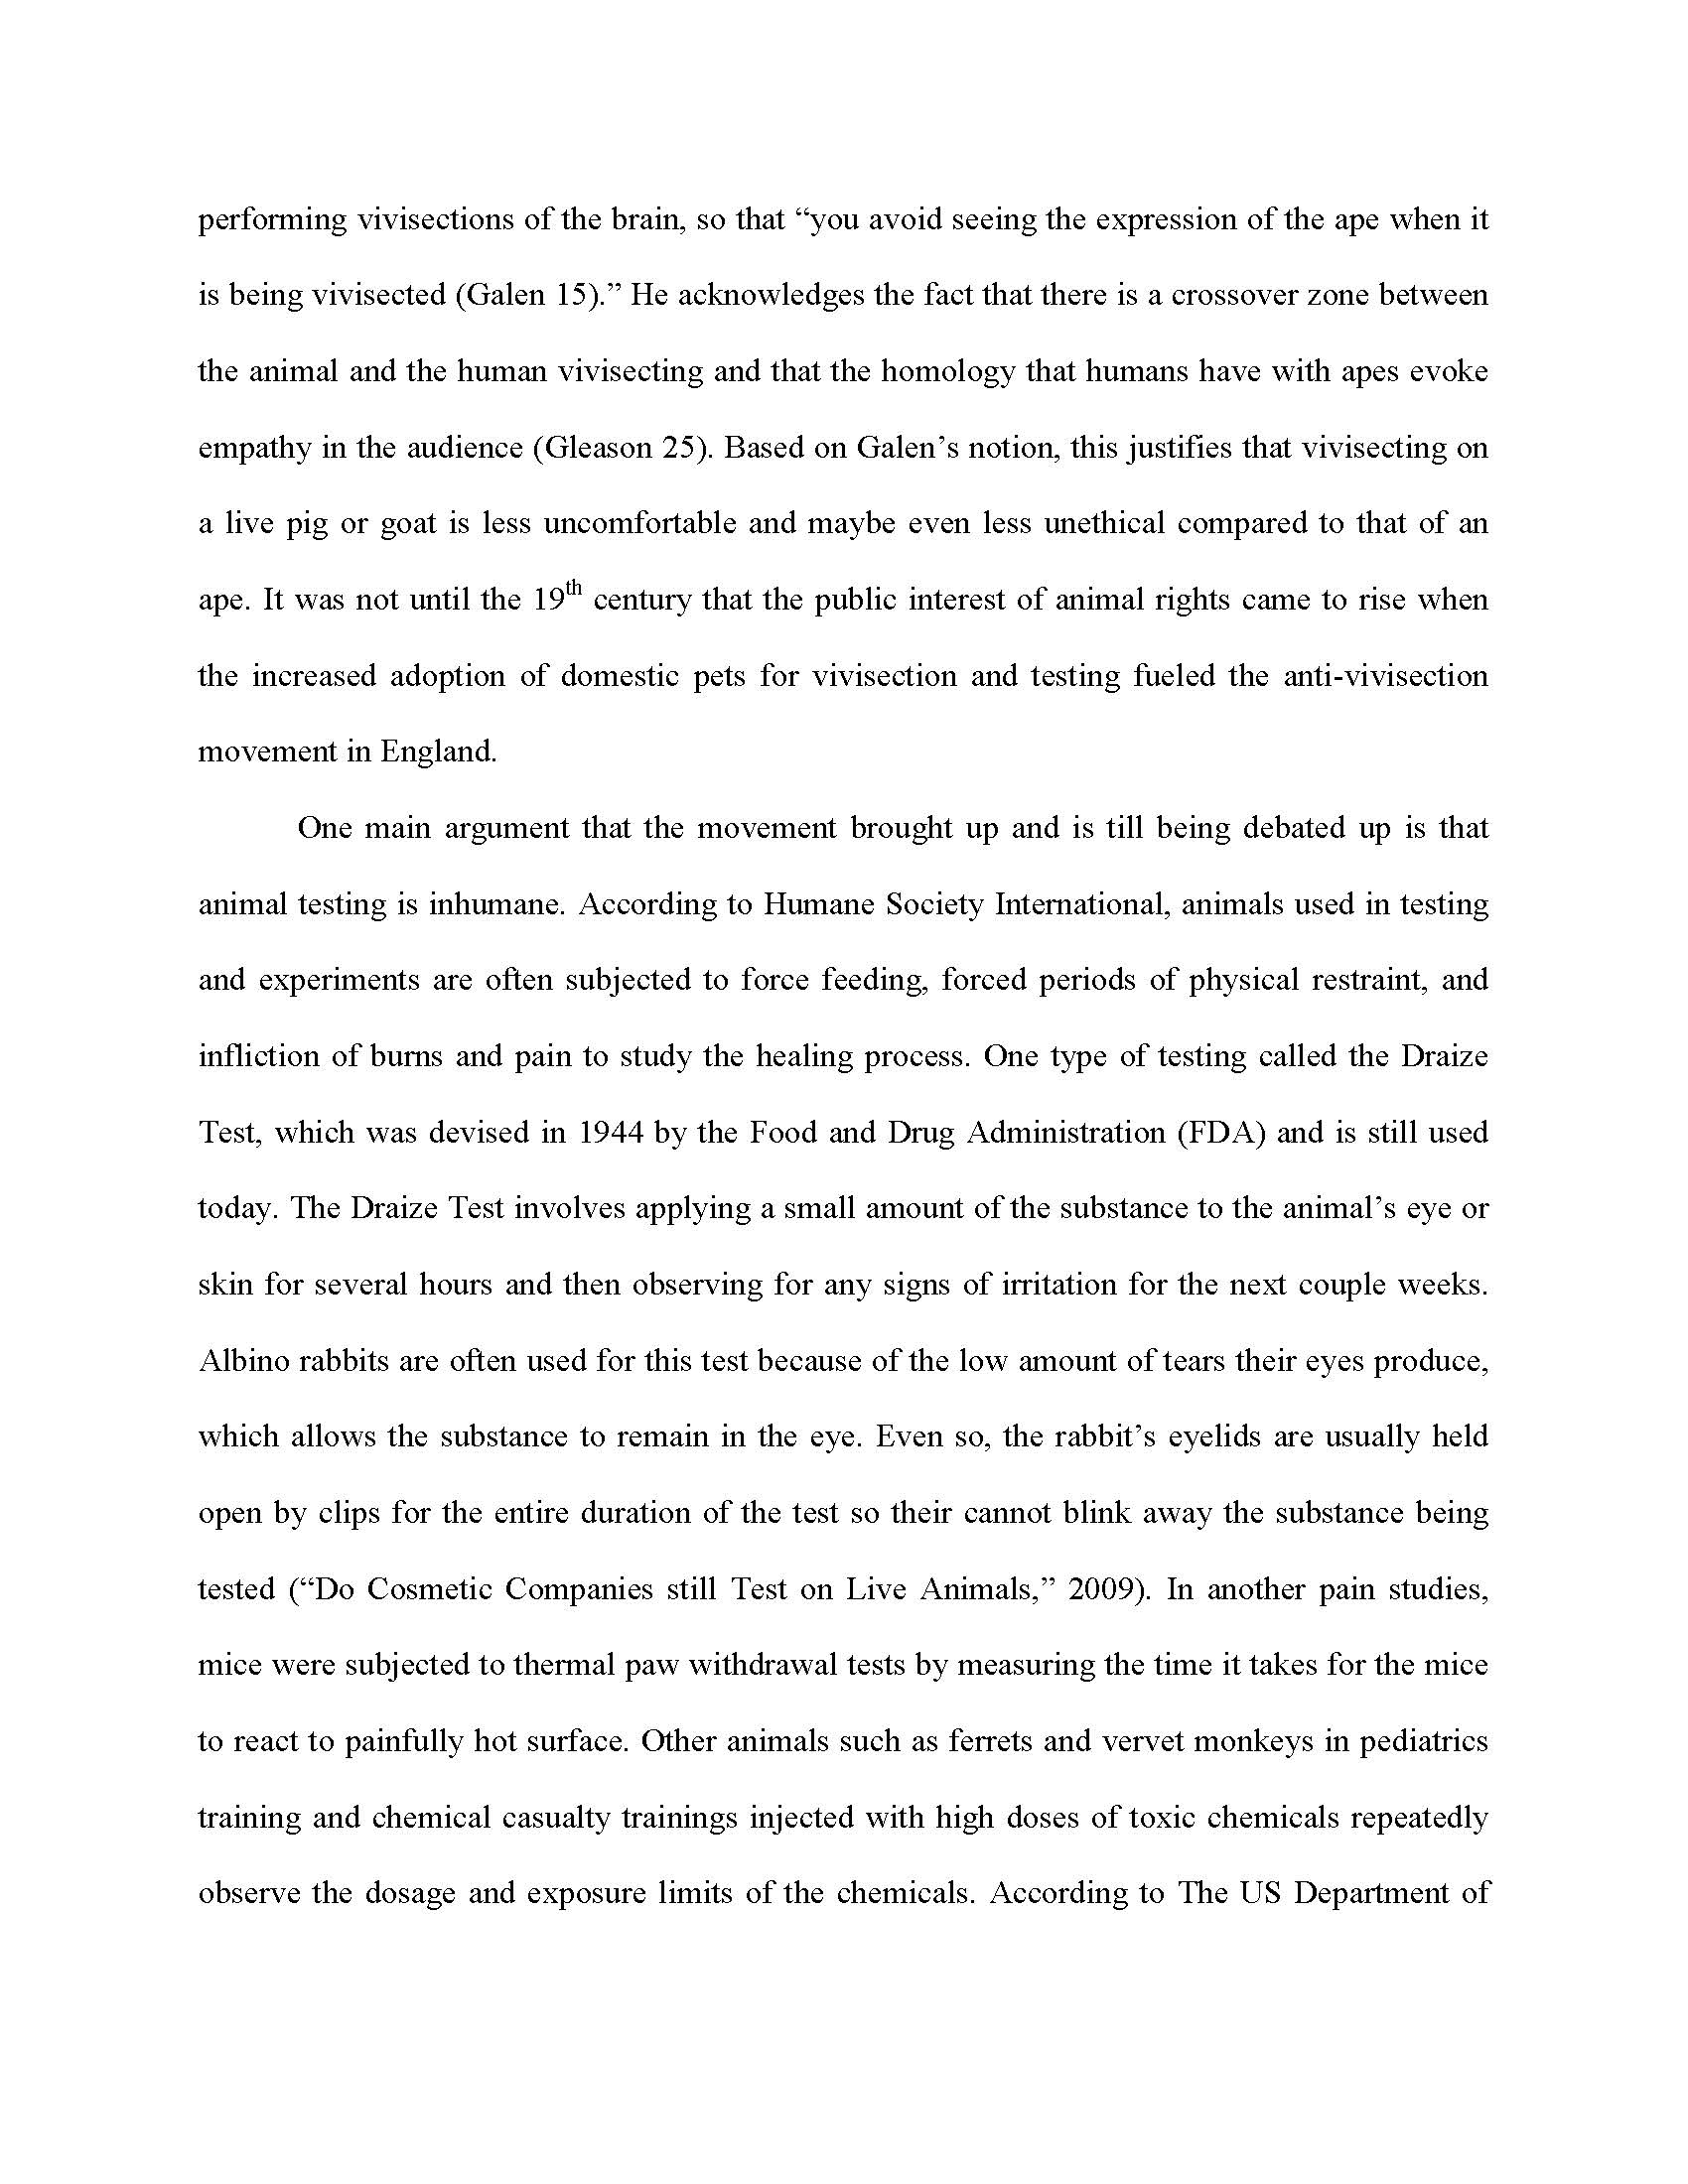 007 Essay Example Against Animal Testing Final Page 2 Imposing Titles Persuasive Conclusion Full